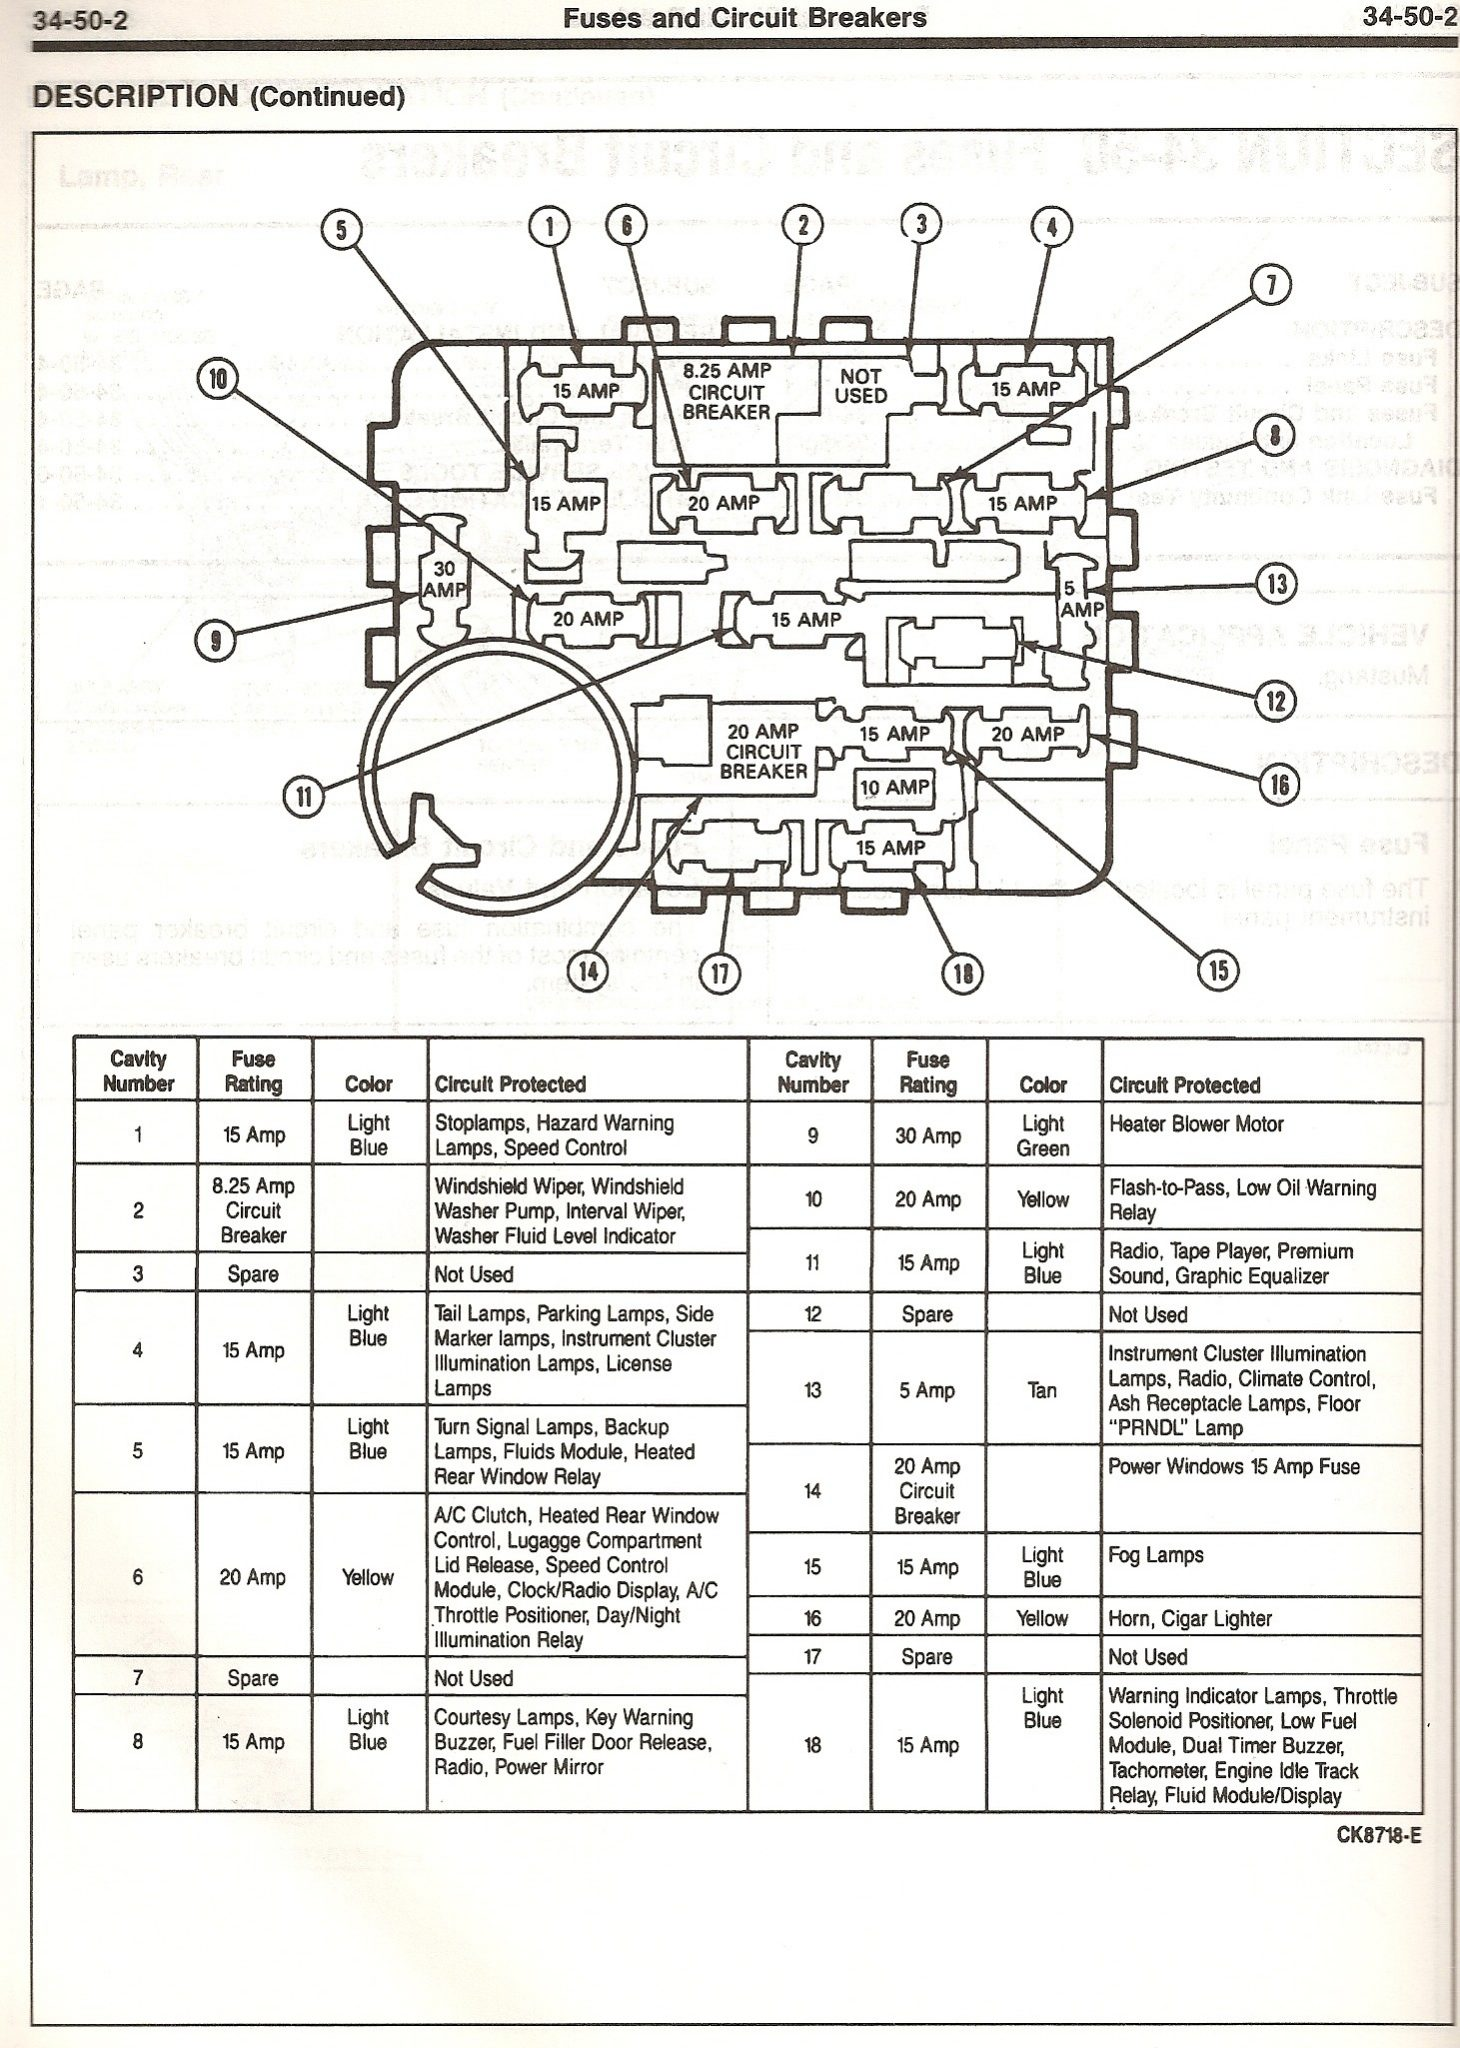 90 2pont3 mustang fuse panel dash diagram 1979 1993 ford mustang archives 1993 ford mustang fuse box diagram at creativeand.co